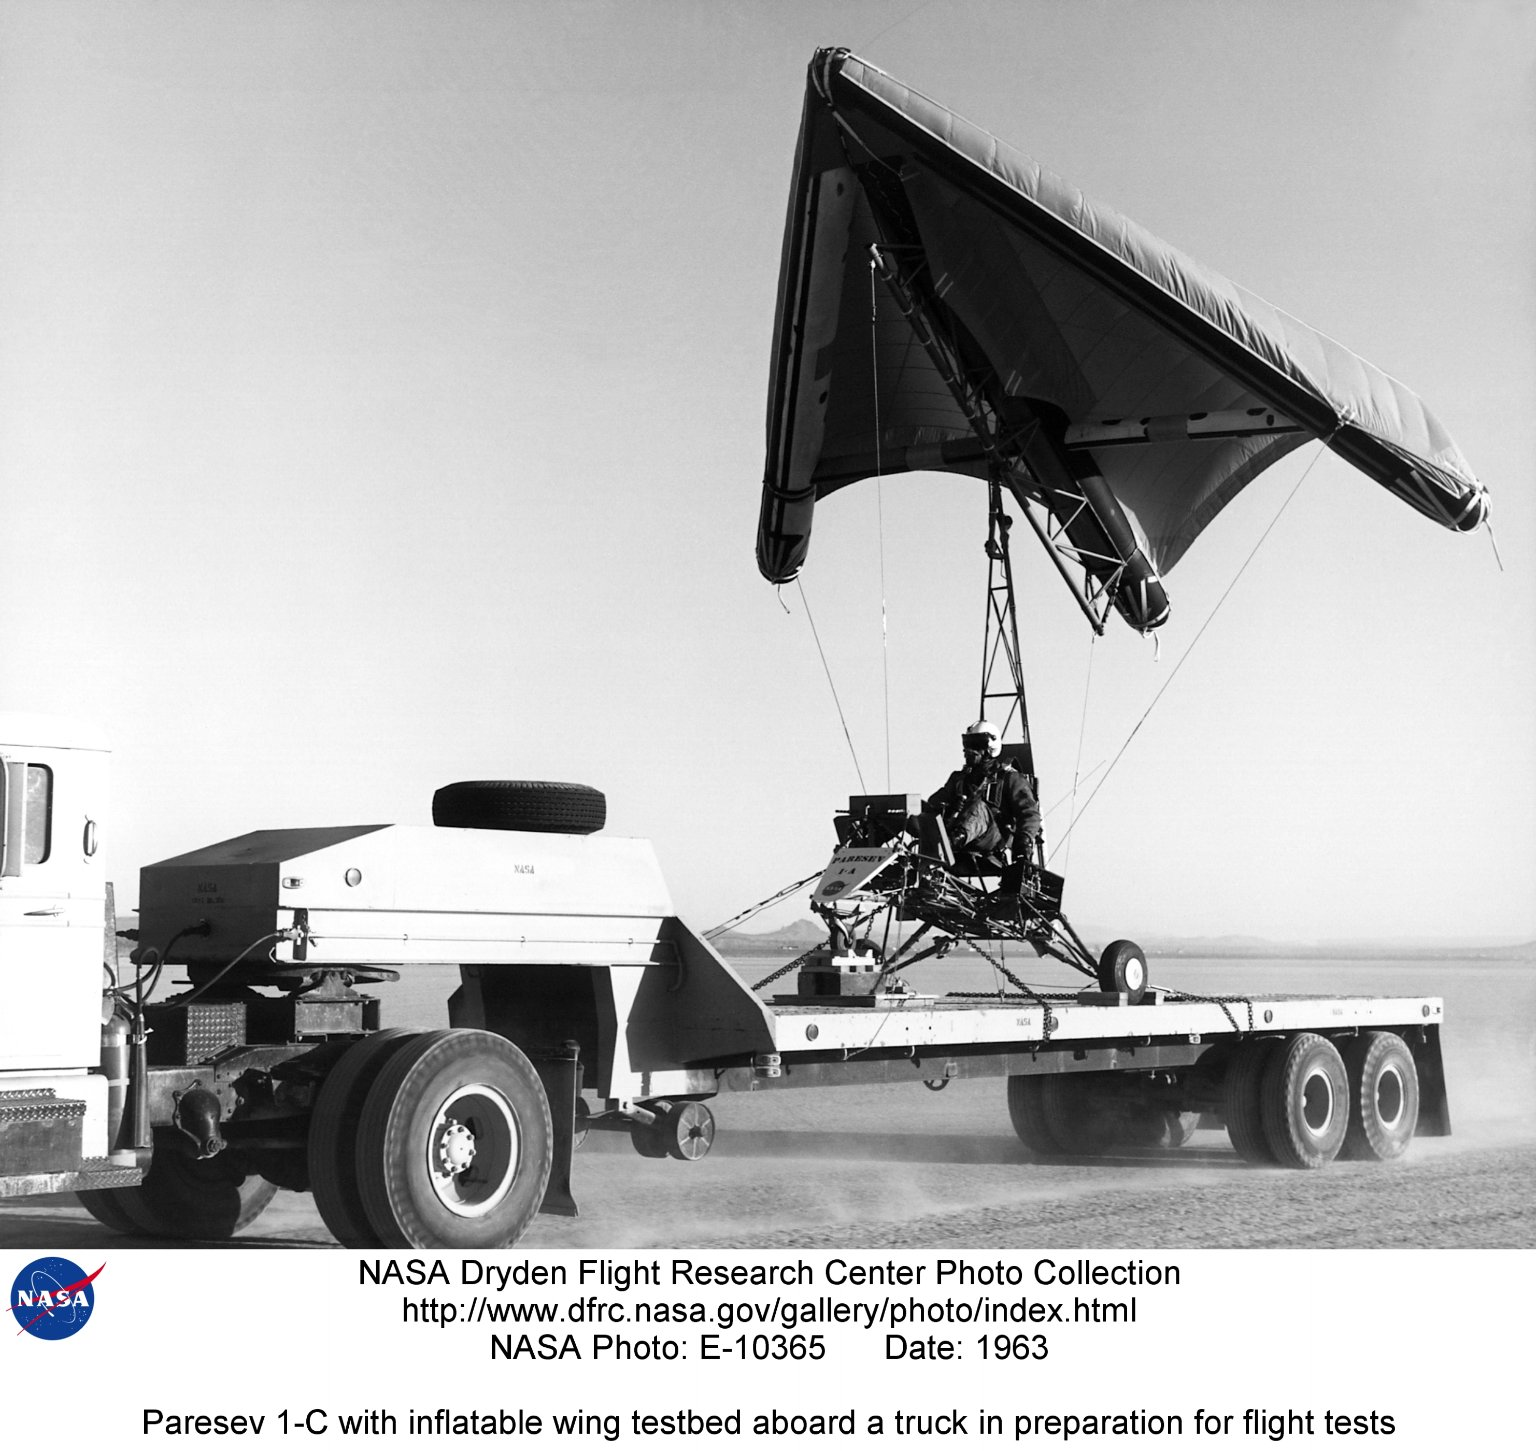 Paresev 1-C with inflatable wing testbed aboard a truck in preparation for flight tests